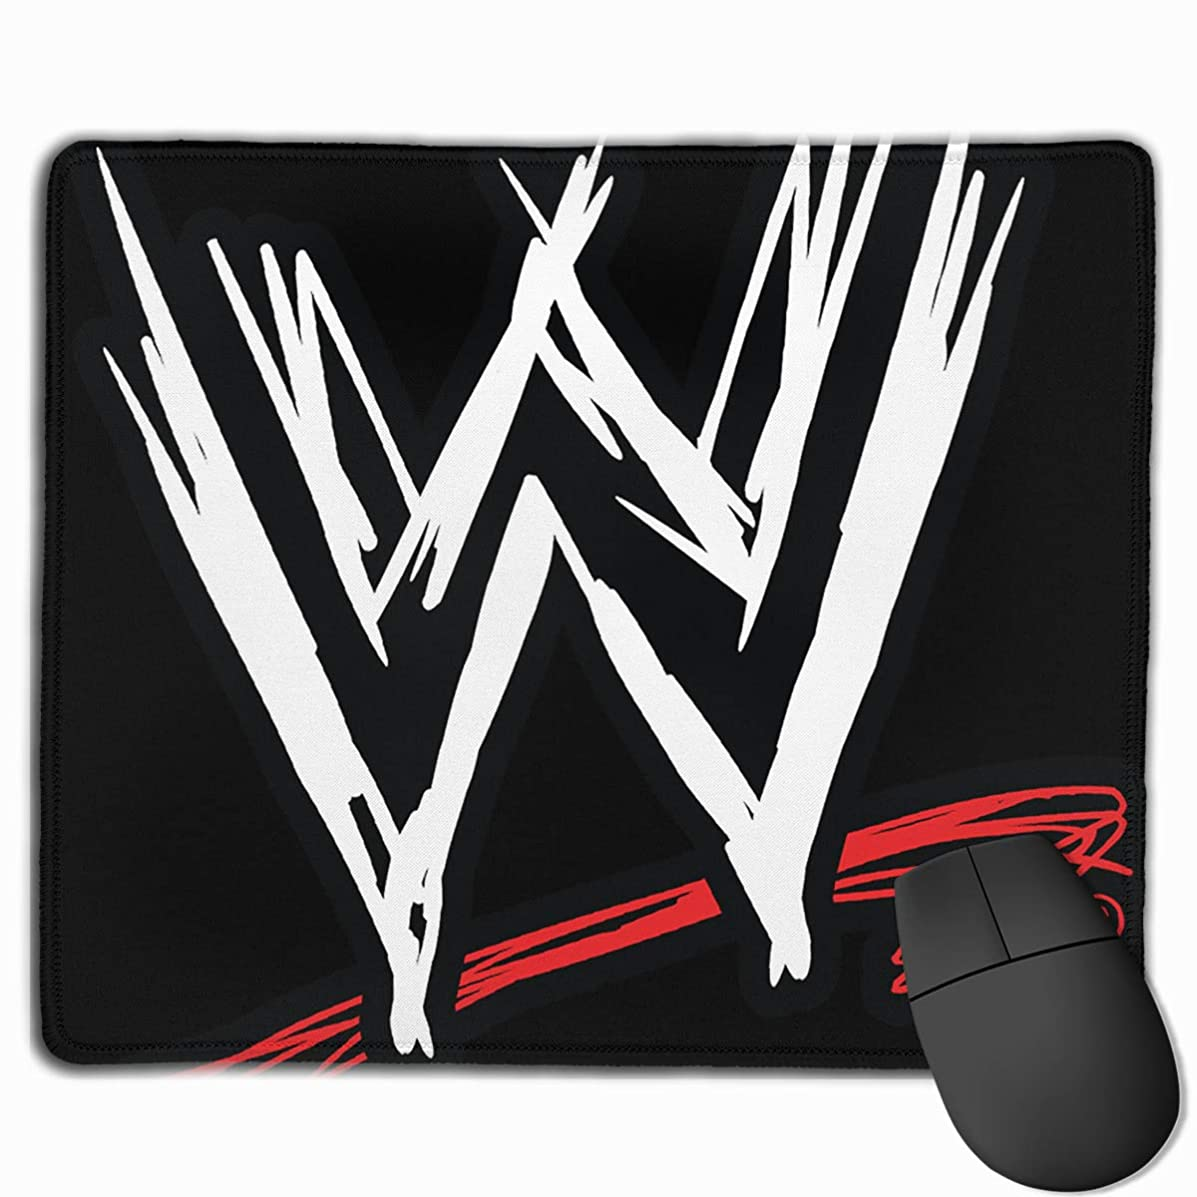 Non-Slip Mouse Pad Rectangle Rubber Mousepad WWE Logo Print Gaming Mouse Pad